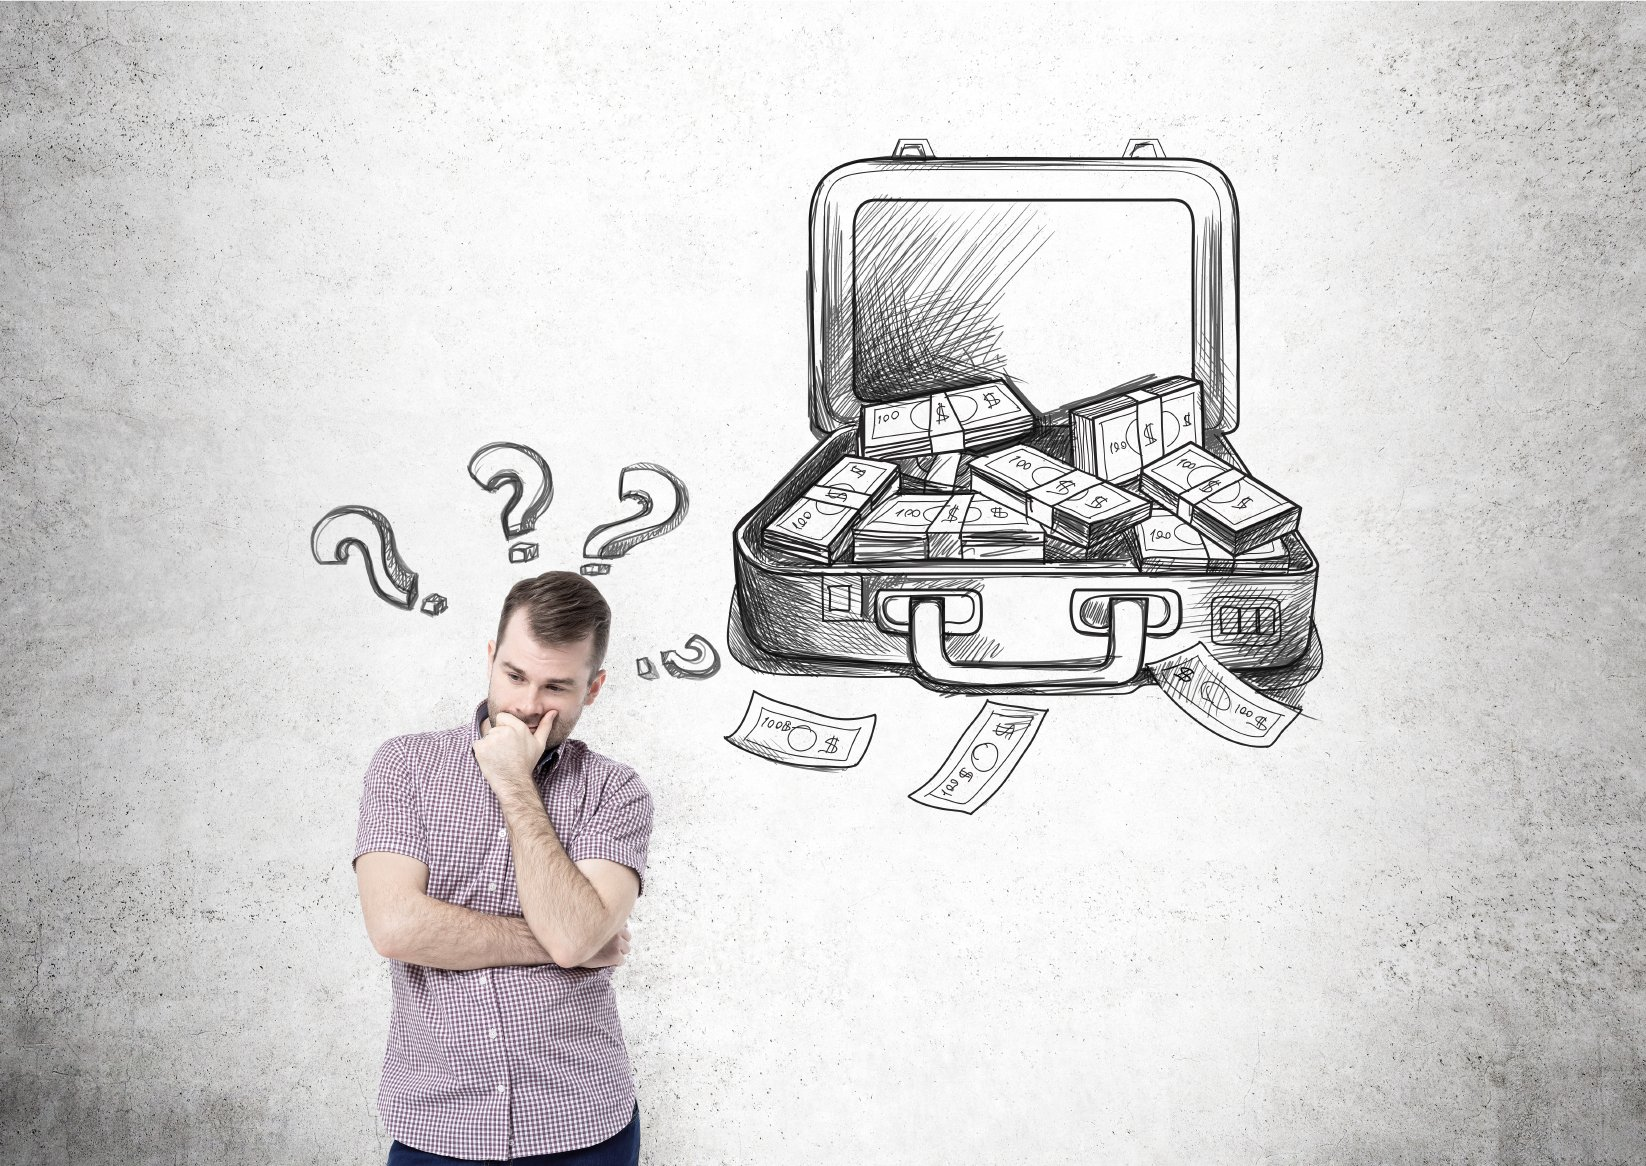 Businessman with hand at chin, open case with money drawn on concrete wall behind, question marks over his head. Concept of making money.